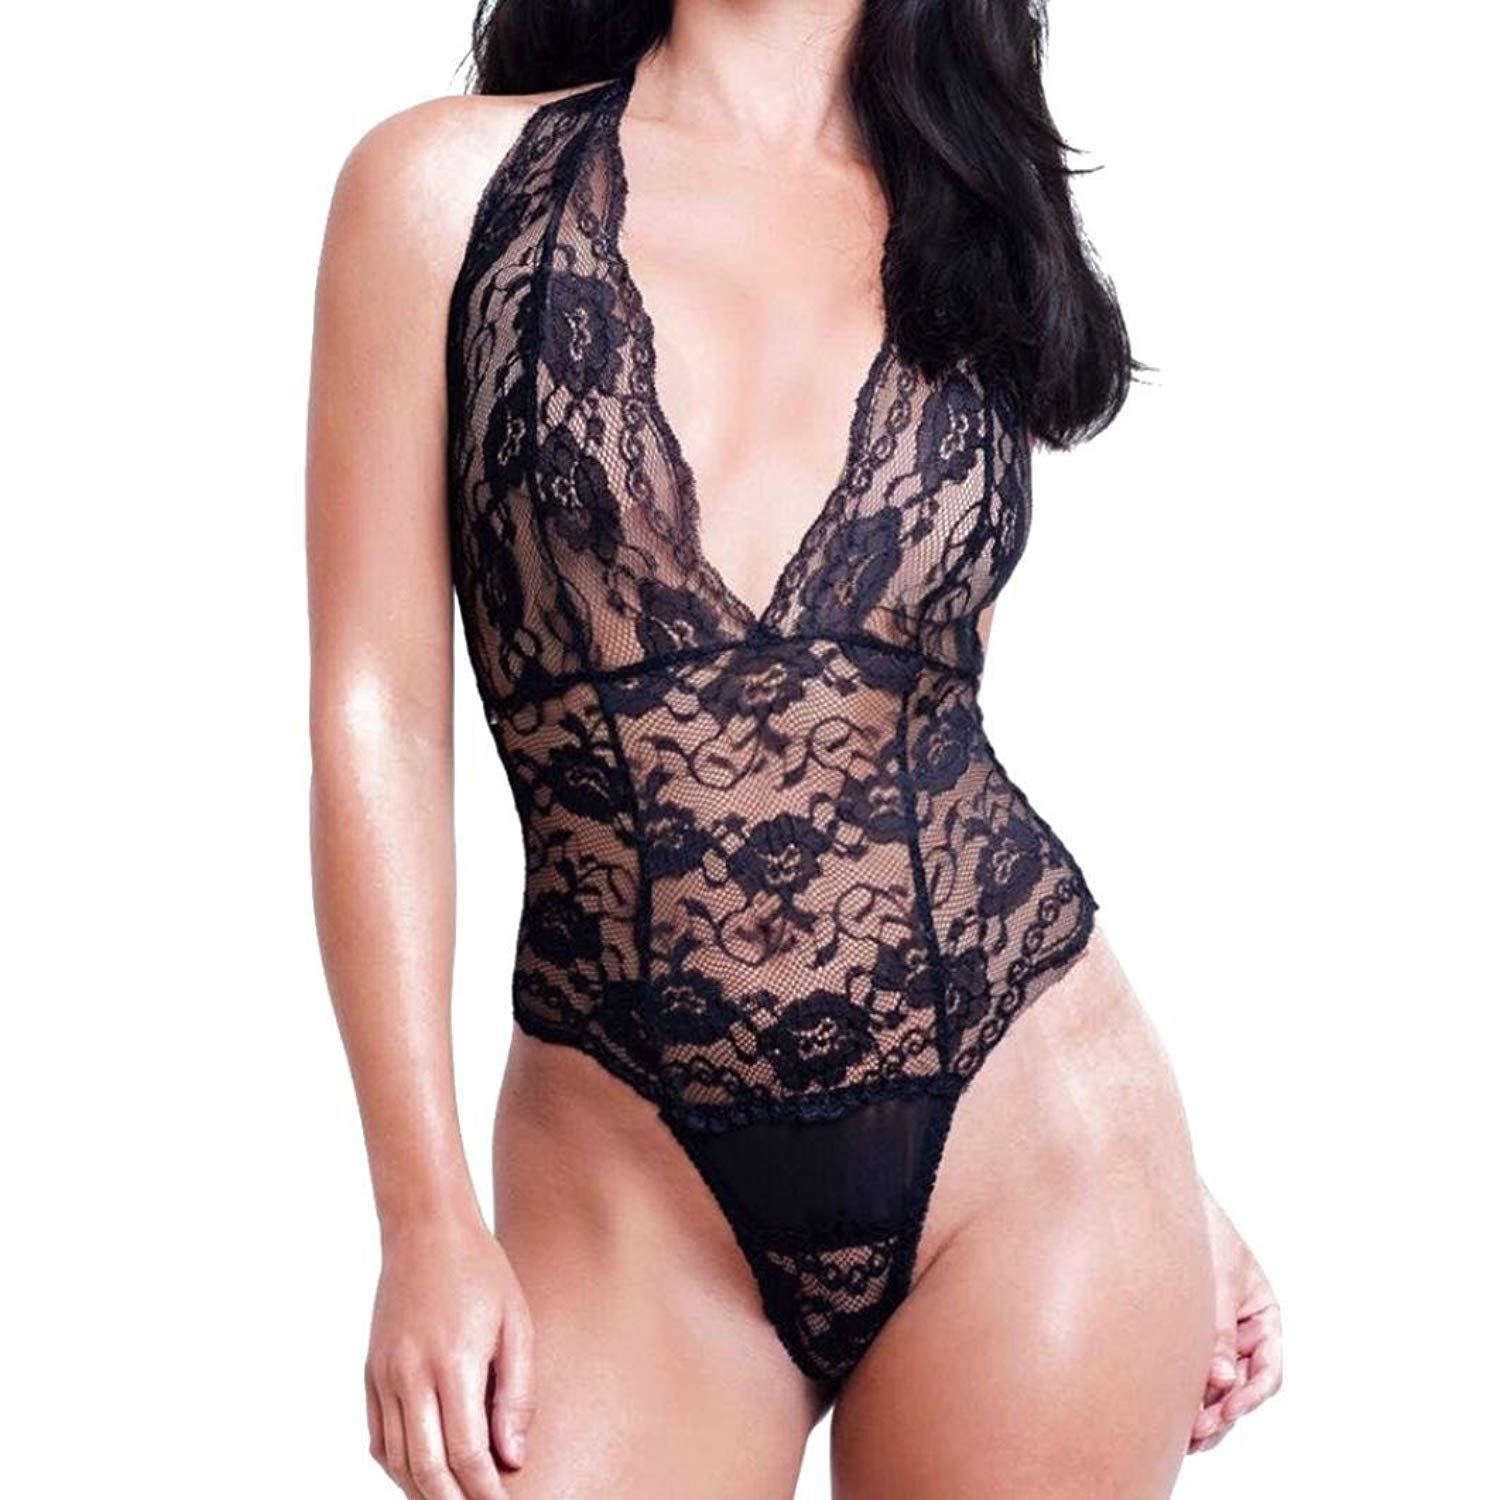 17a6d318588 DongDong Hot Sale! Lady Sexy Lingerie Embroidery Lace Halter Bustier Vest  Crop Bandage Sexy Lingerie